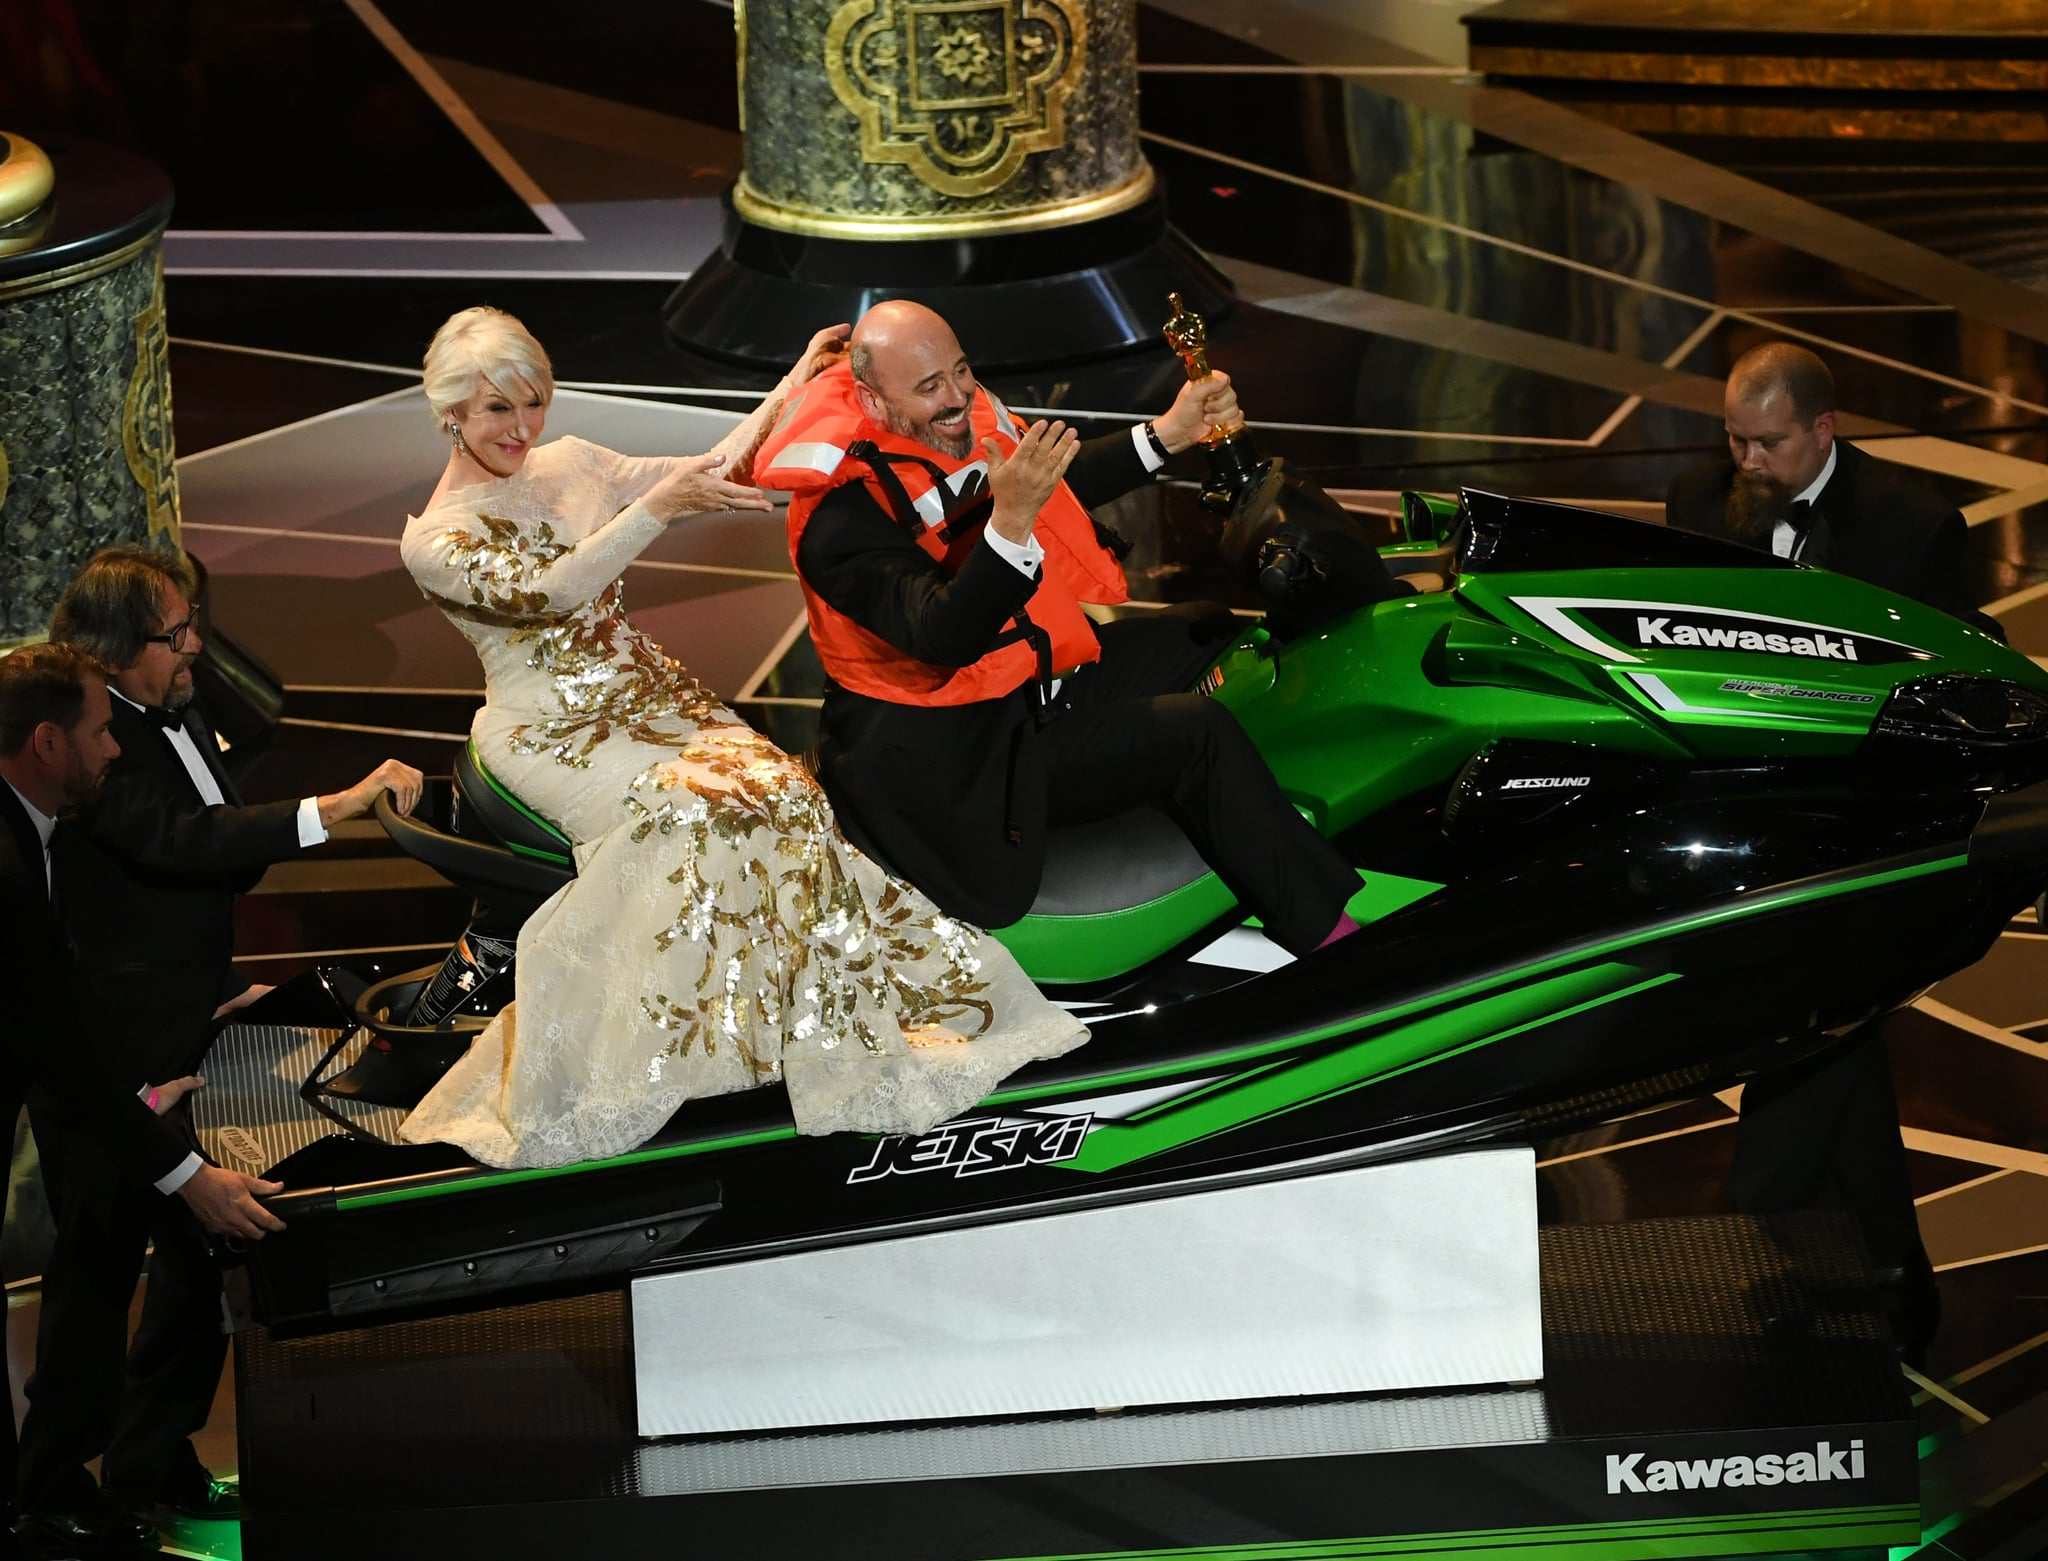 HOLLYWOOD, CA - MARCH 04:  (L-R) Actor Helen Mirren with Oscar-winning costume designer Mark Bridges sitting on a Jet Ski (which he received as a prize for shortest acceptance speech) onstage during the 90th Annual Academy Awards at the Dolby Theatre at Hollywood & Highland Center on March 4, 2018 in Hollywood, California.  (Photo by Kevin Winter/Getty Images)